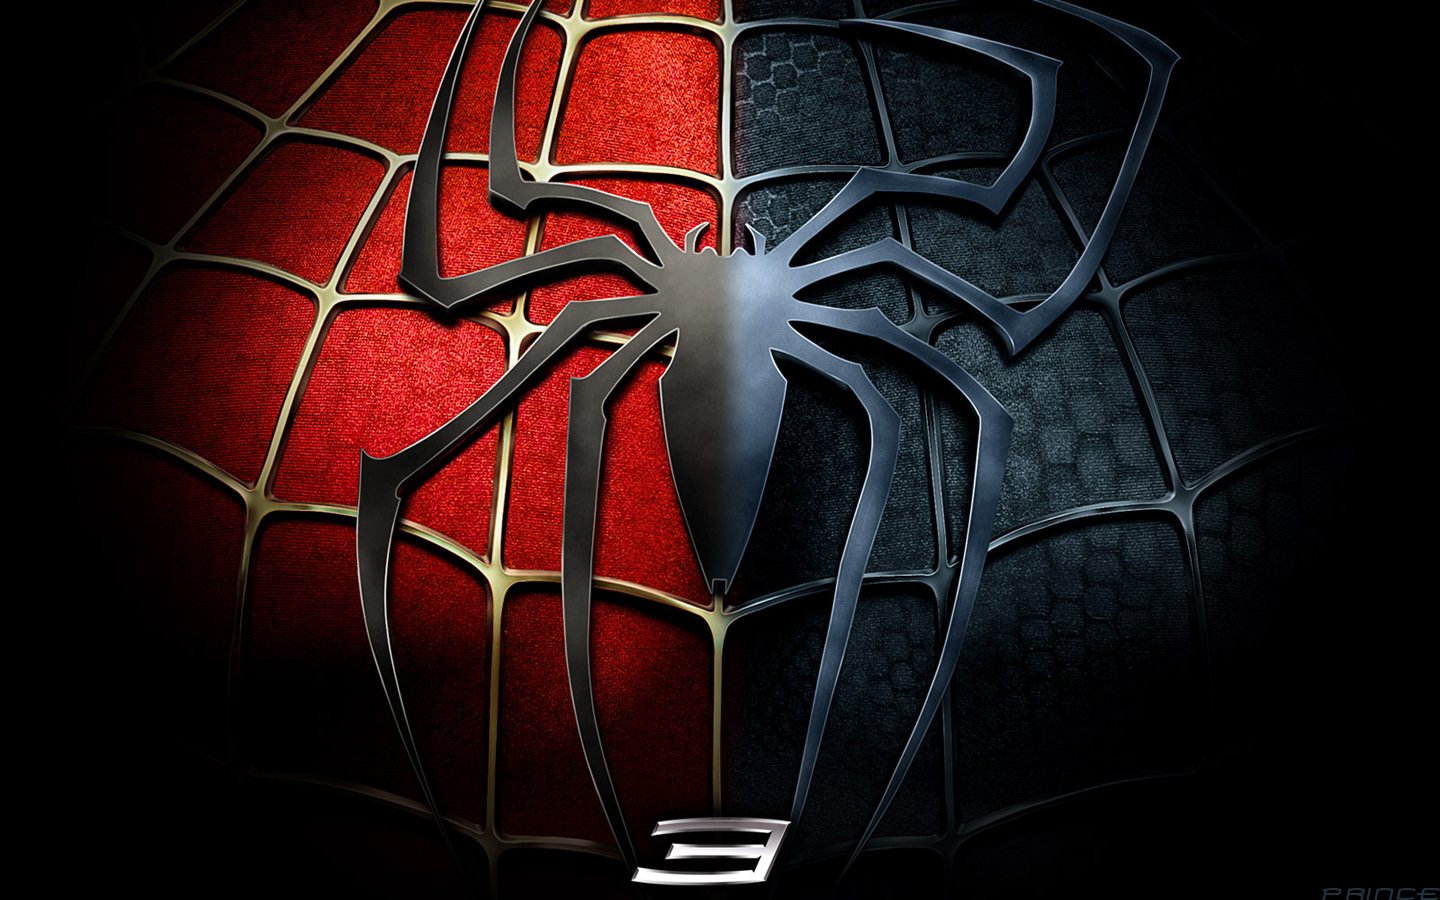 Gambar Joss Wallpaper Spiderman 3 Hd